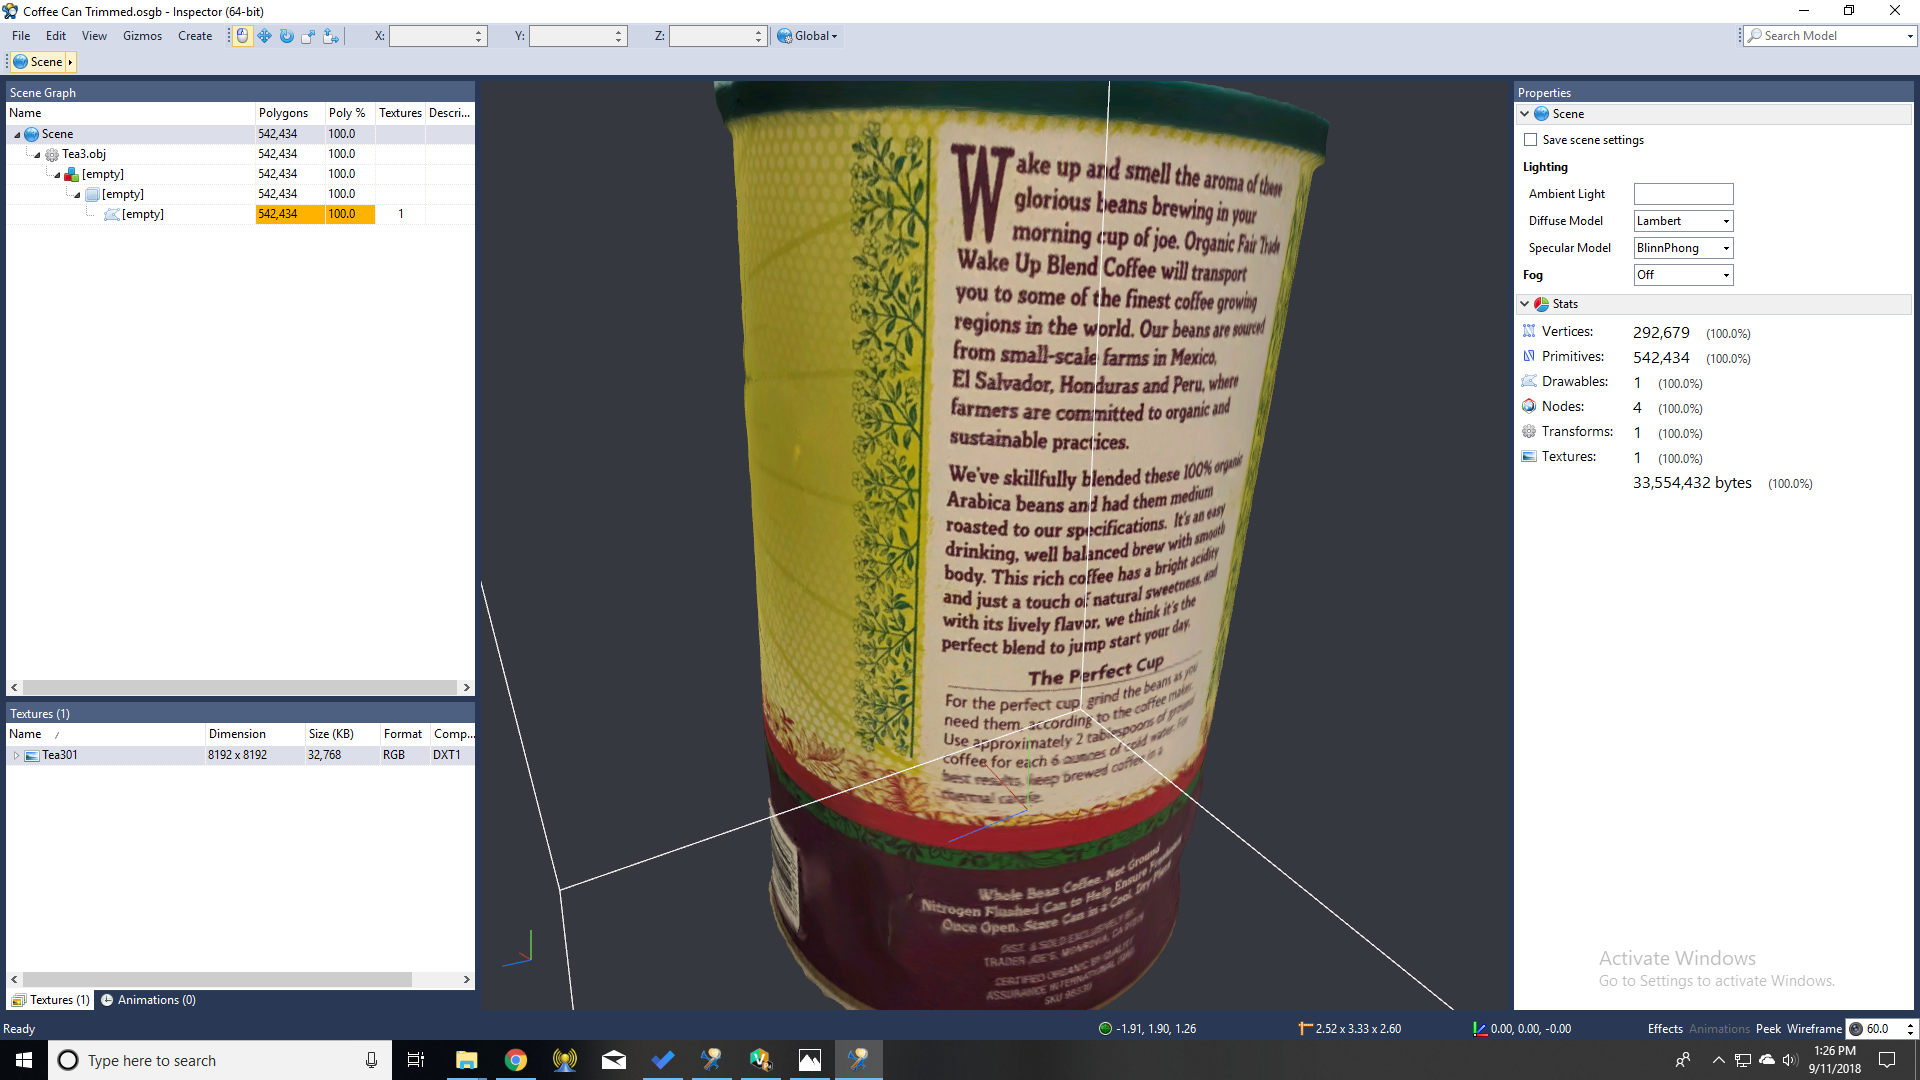 How I Brought a Coffee Can Into Virtual Reality Using Smartphone Photos